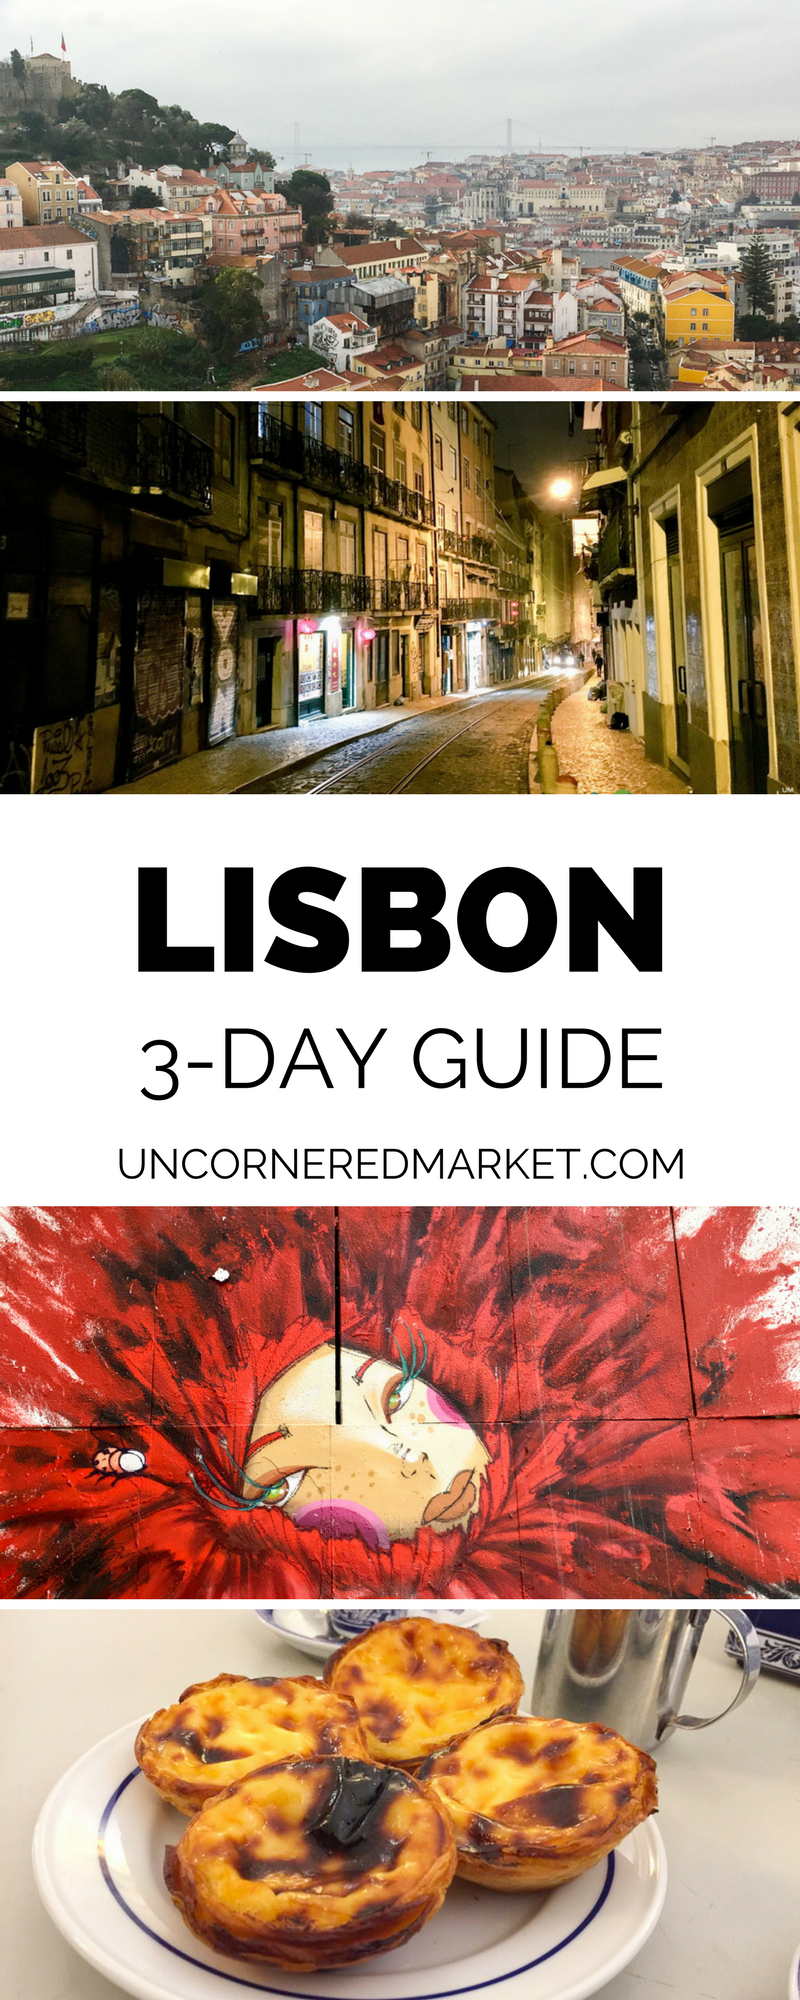 A 3-day travel guide to Lisbon with 22 things ideas to get you started in your itinerary. Recommendations on things to do, restaurants and dishes, tram routes, fado bars, favorite neighborhoods, street art, bakeries, and more. | Uncornered Market  #lisbon #traveltips #portugal #guide